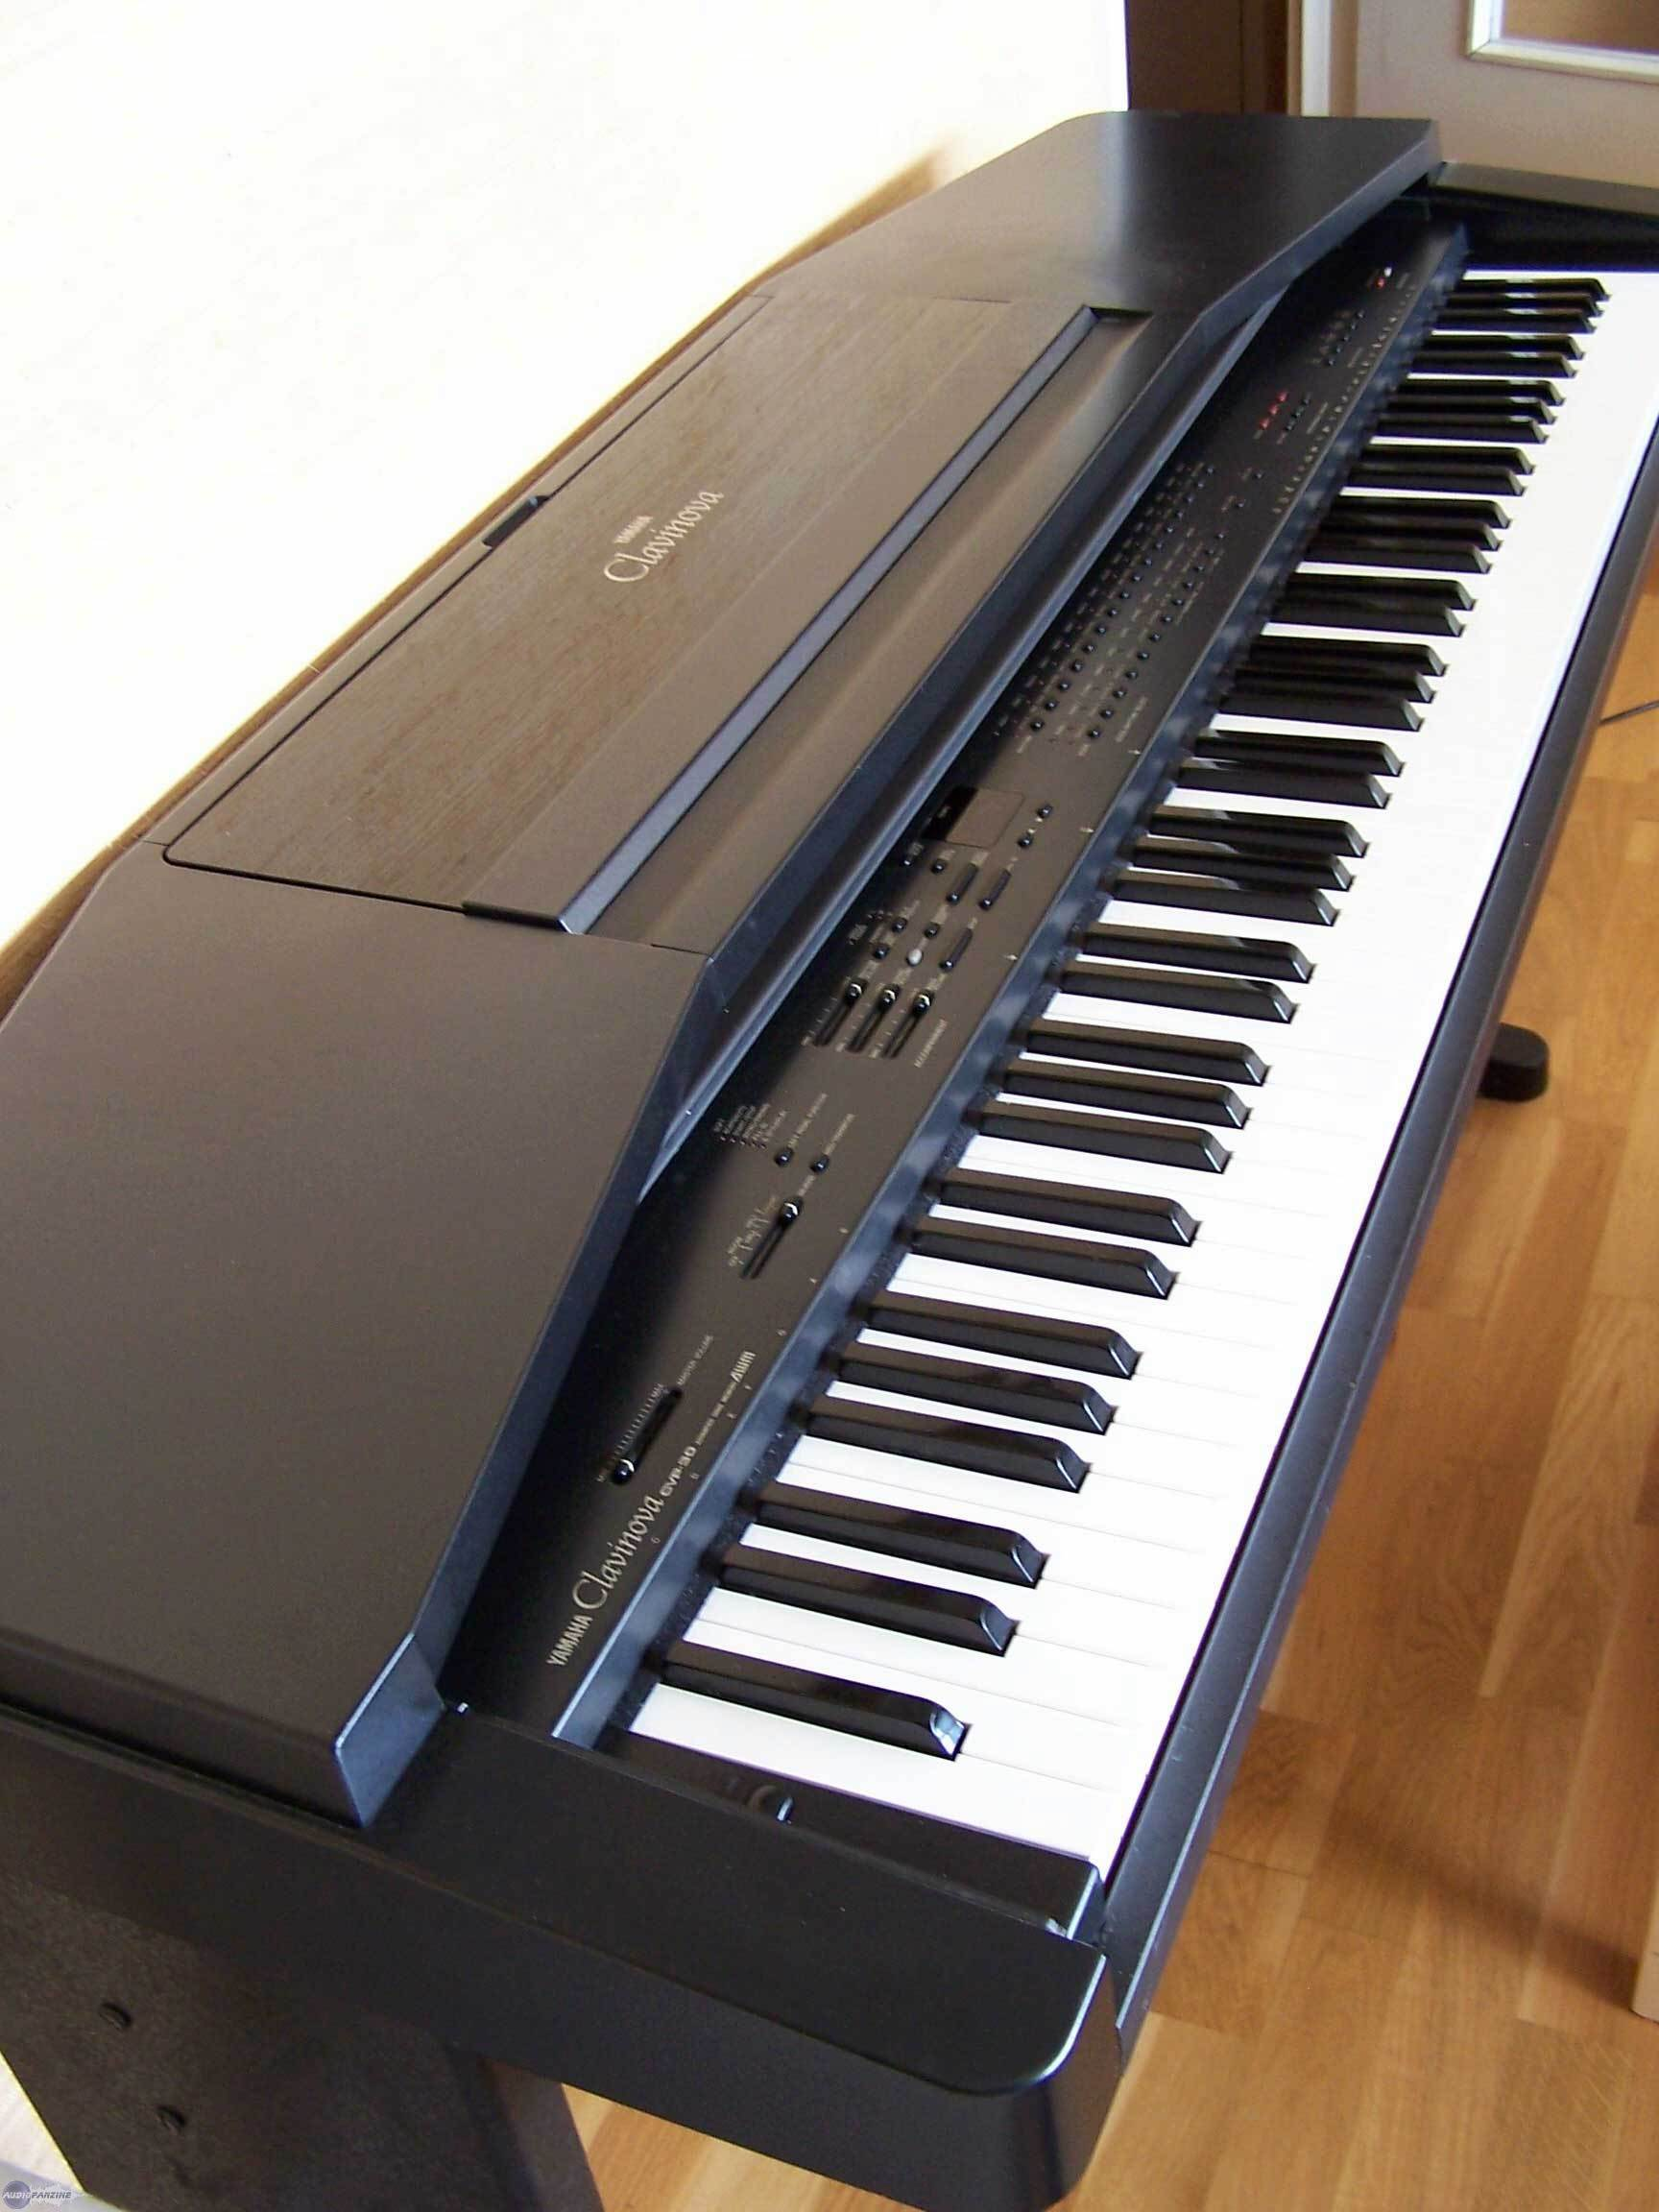 Yamaha clavinova model cvp 301 digital piano